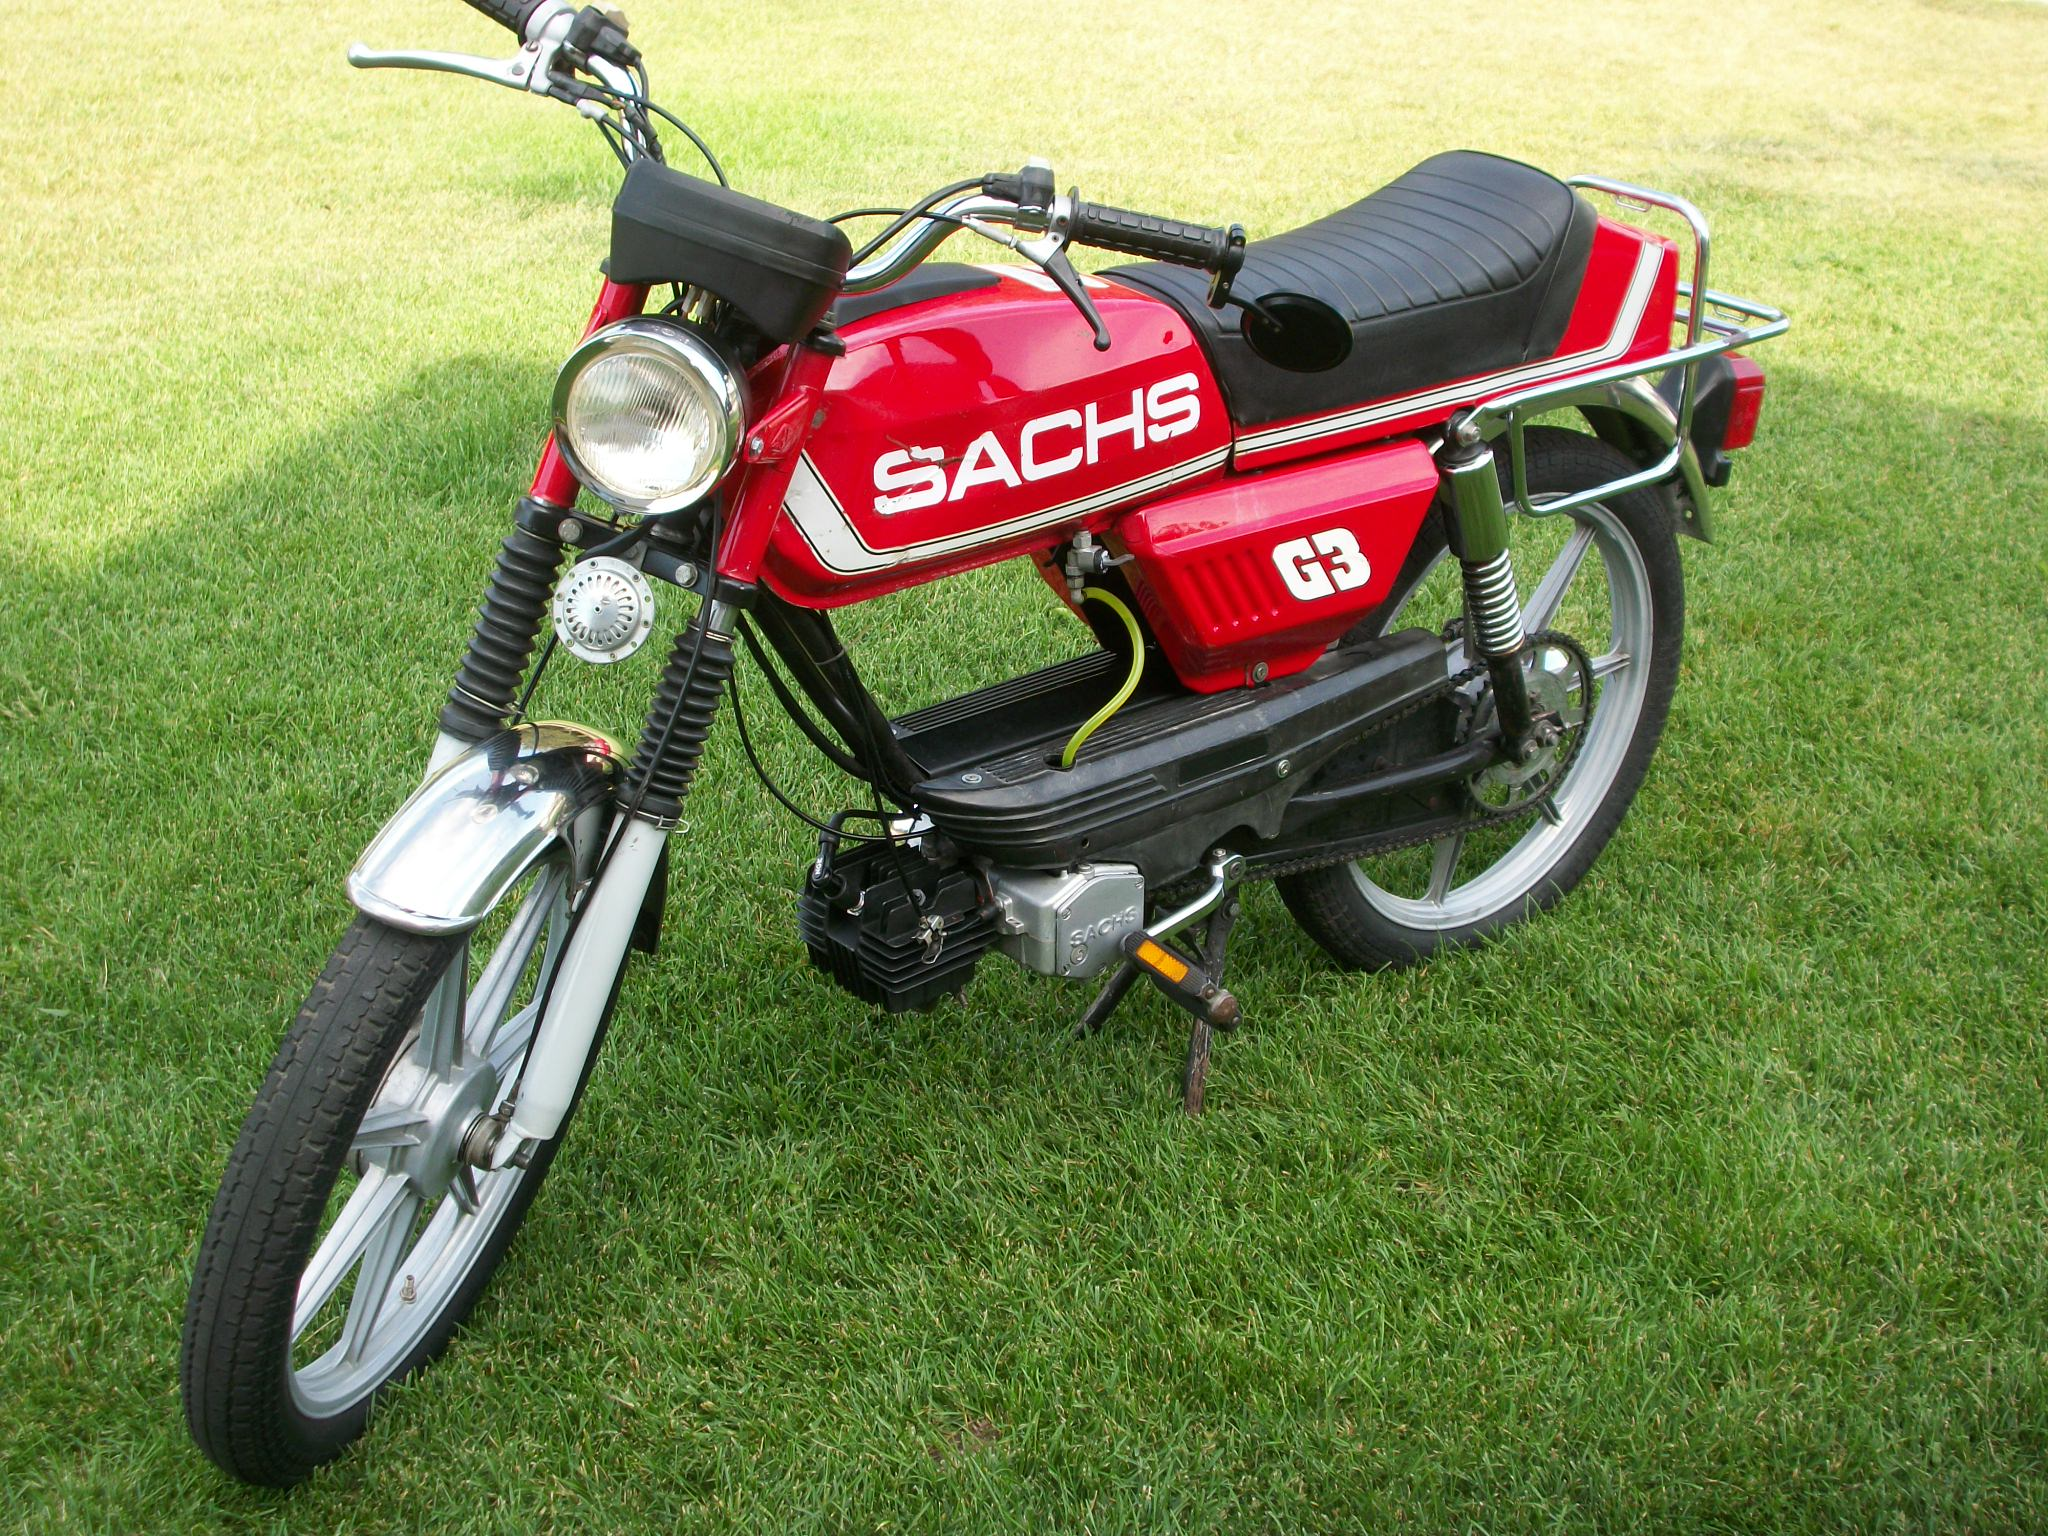 reconditioned  1979 sachs g3 prima  sold